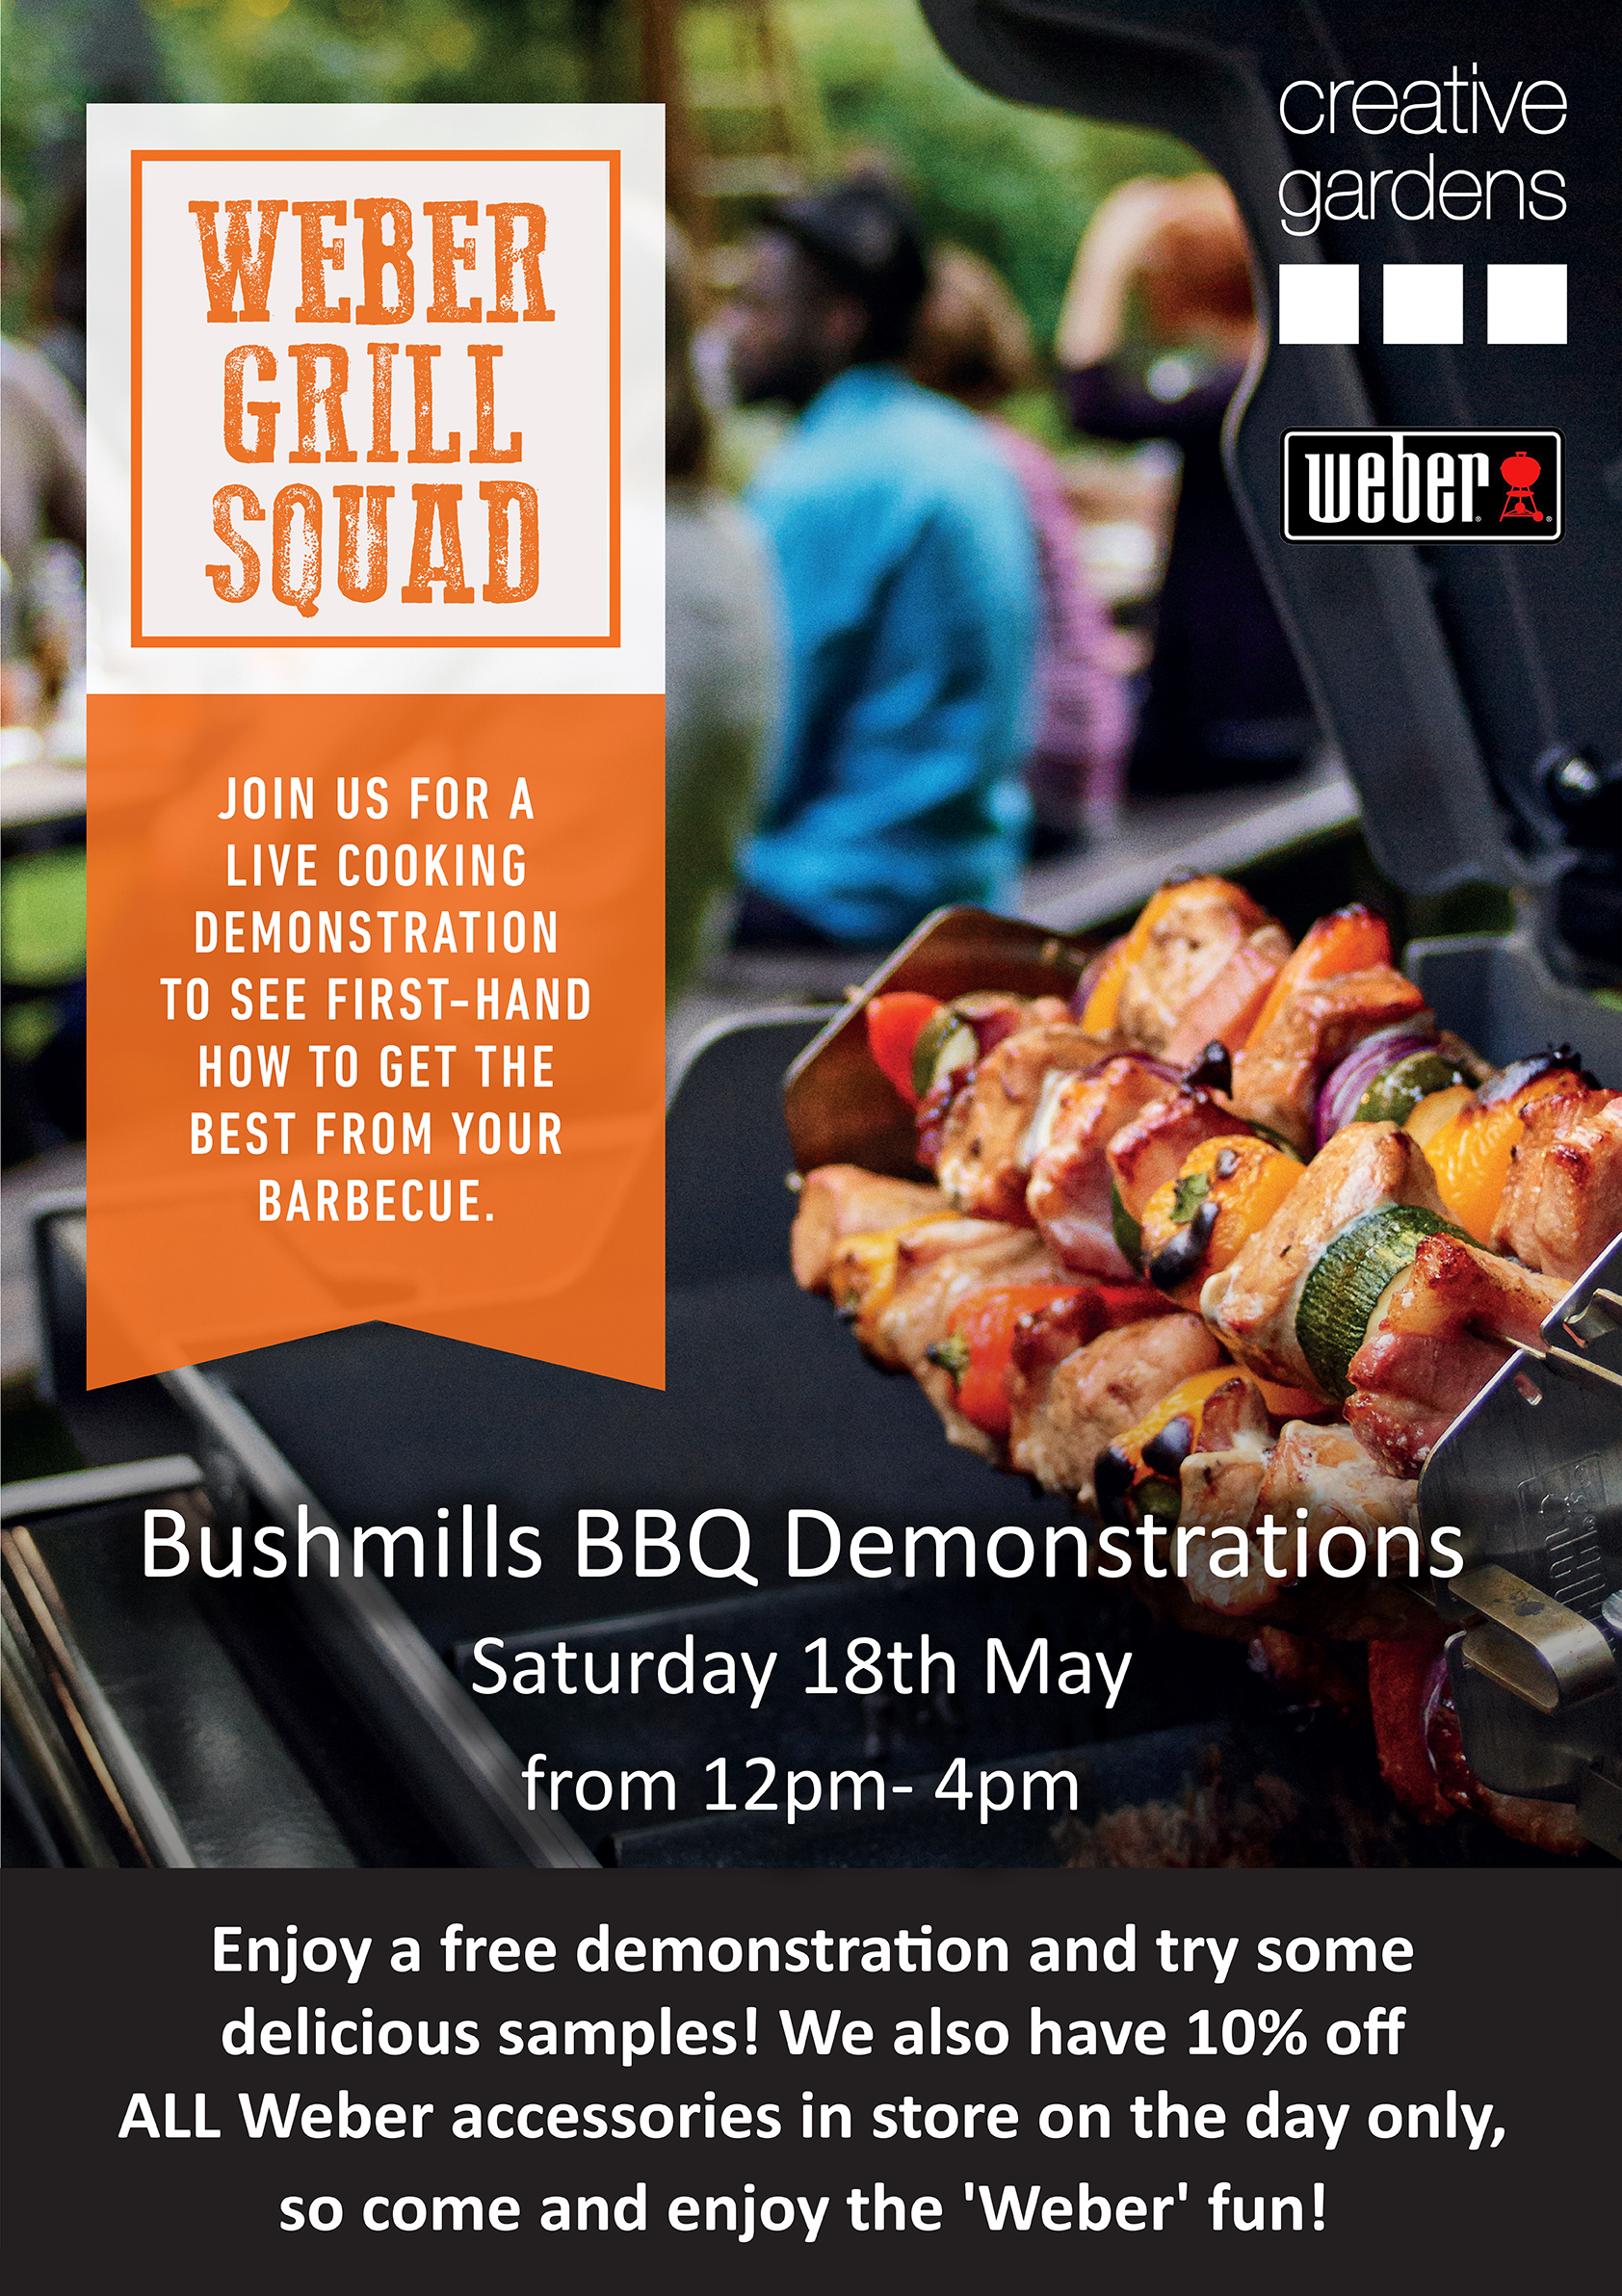 Weber grill squad poster_bushmills_18th May_web.jpg